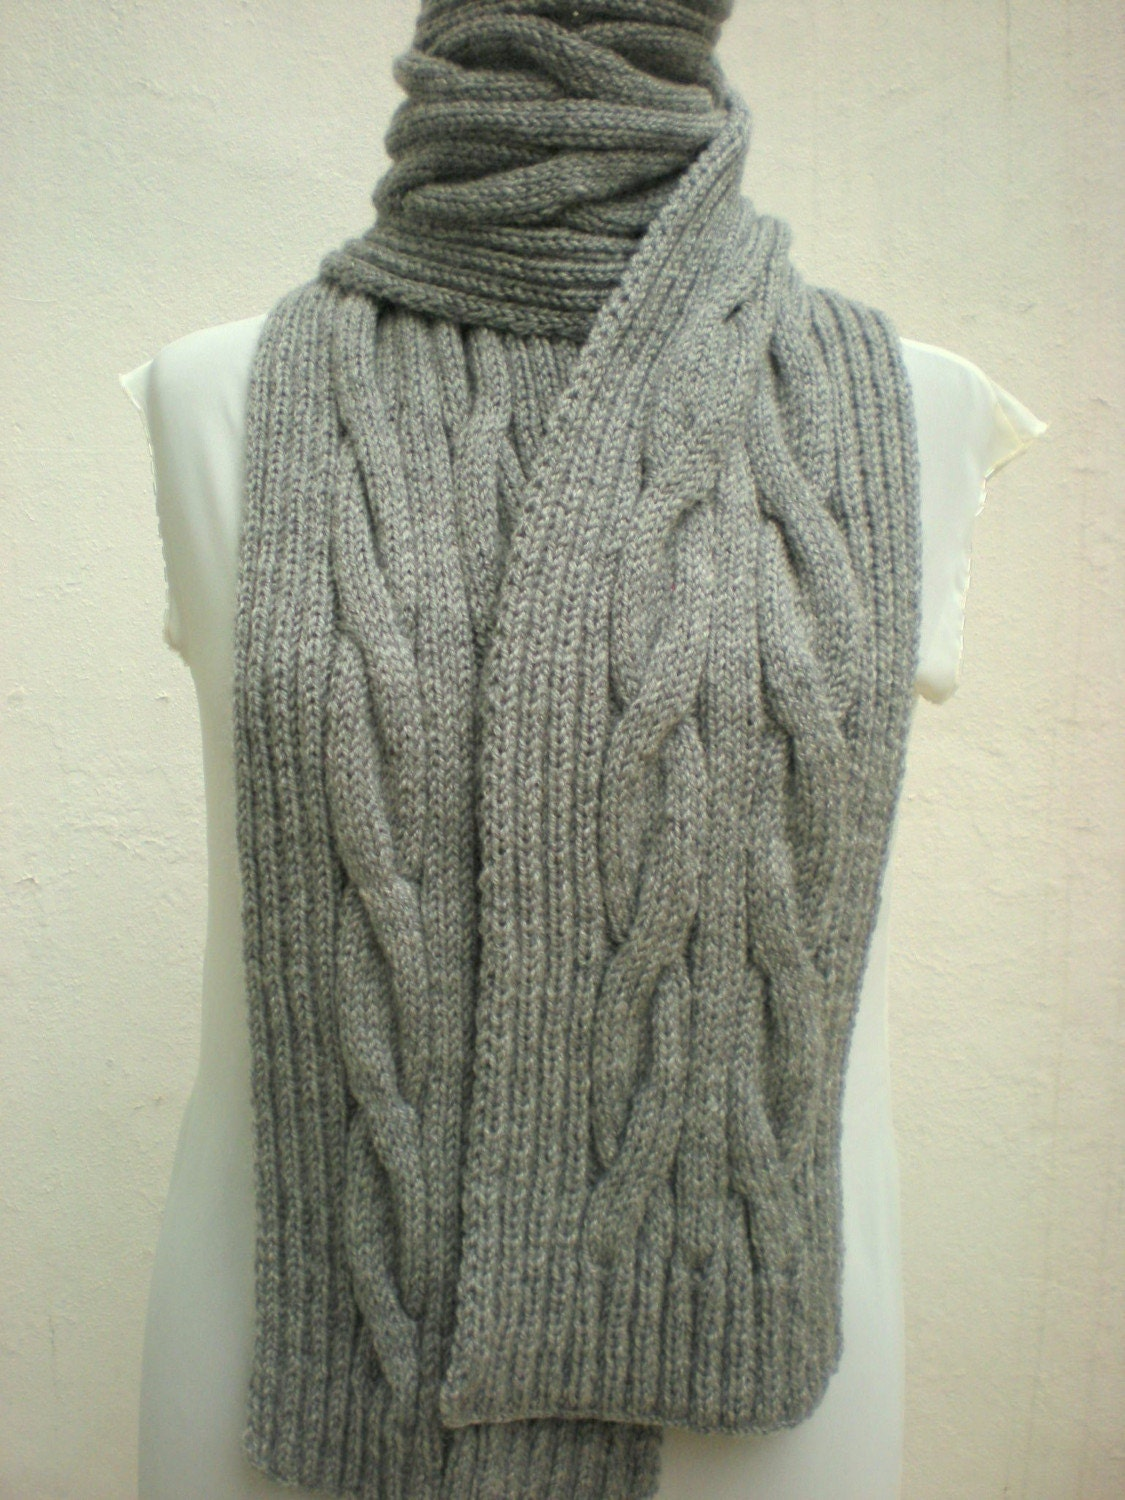 Aran Infinity Scarf Knitting Pattern : Scarf Cable Aran Knitting Hand Knitted by crochetbutterfly